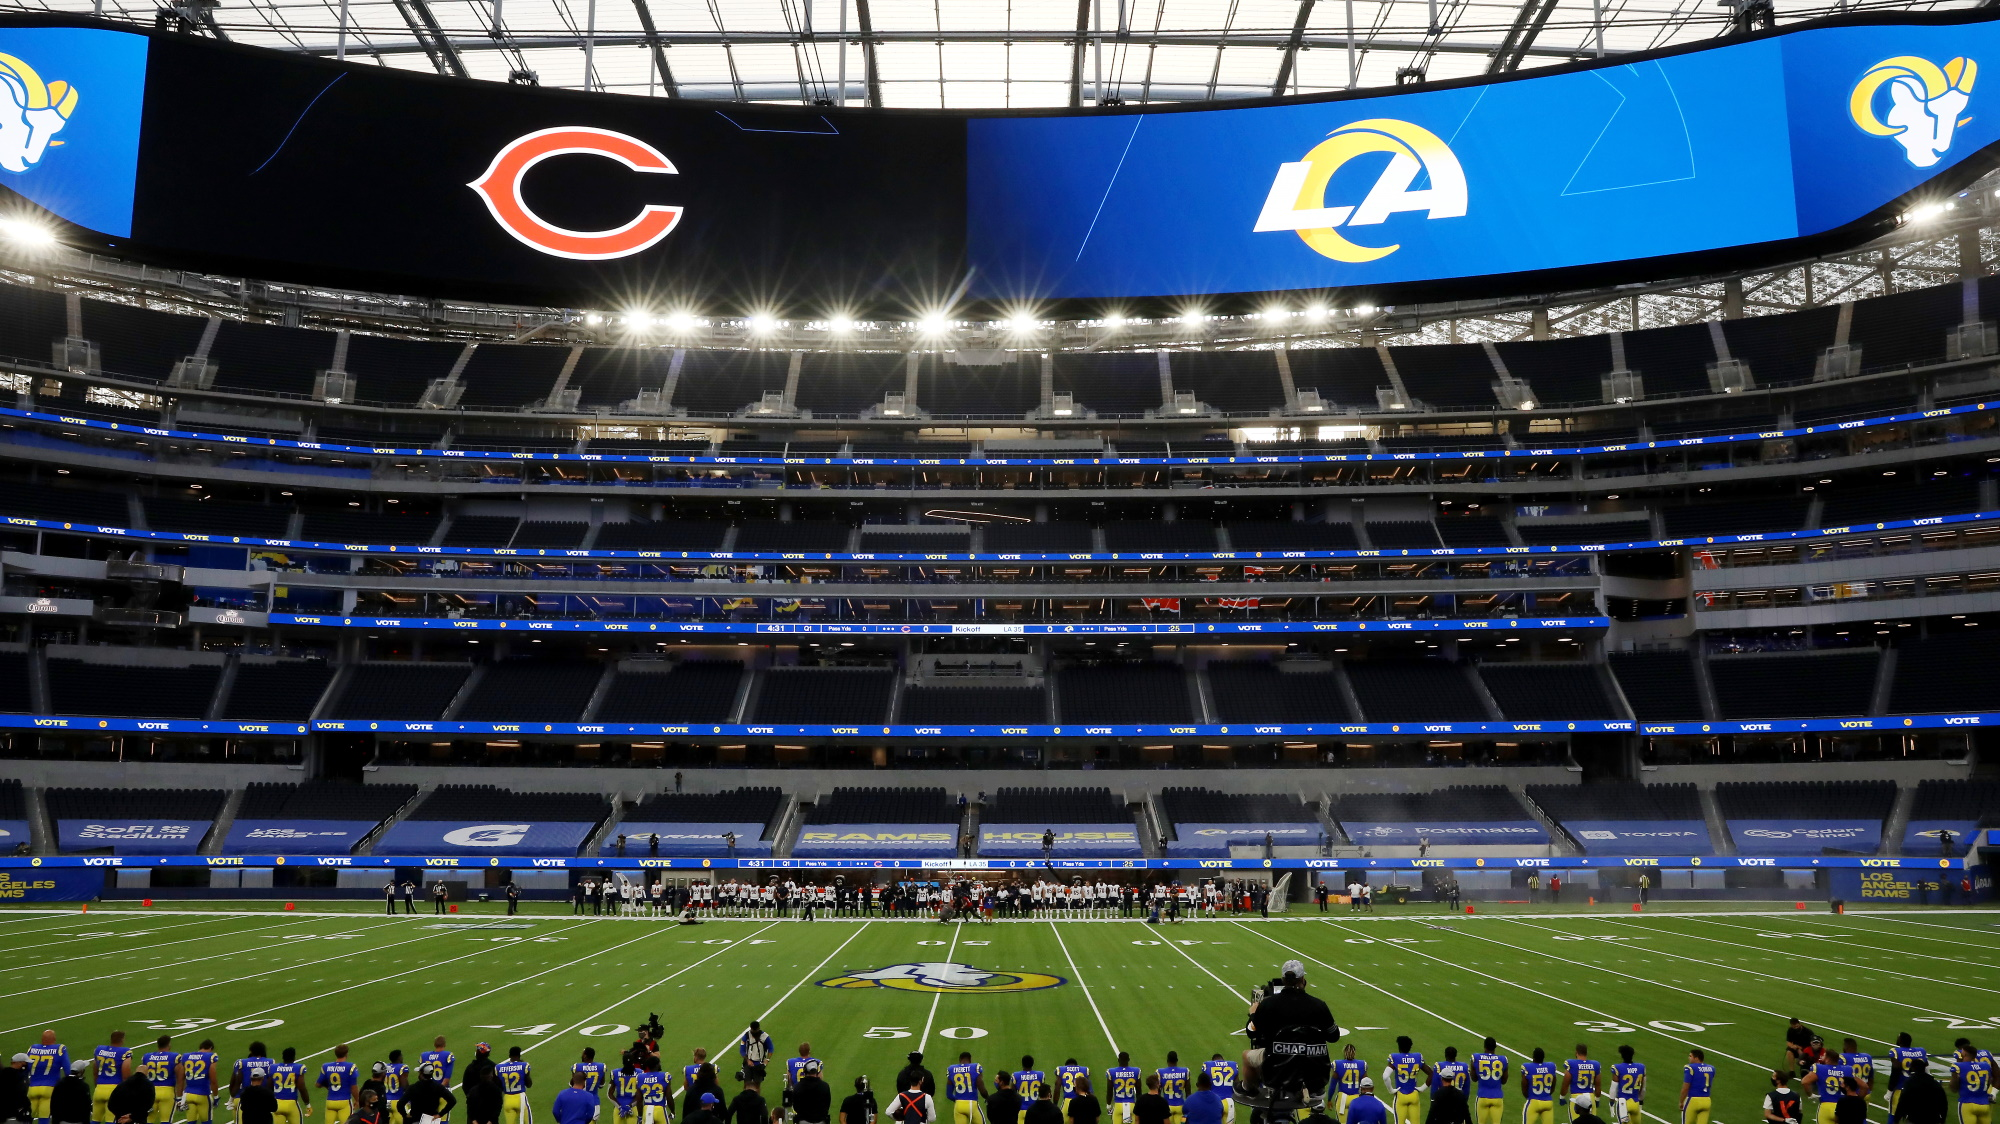 Bears vs Rams live stream: how to watch NFL Sunday Night Football online from anywhere